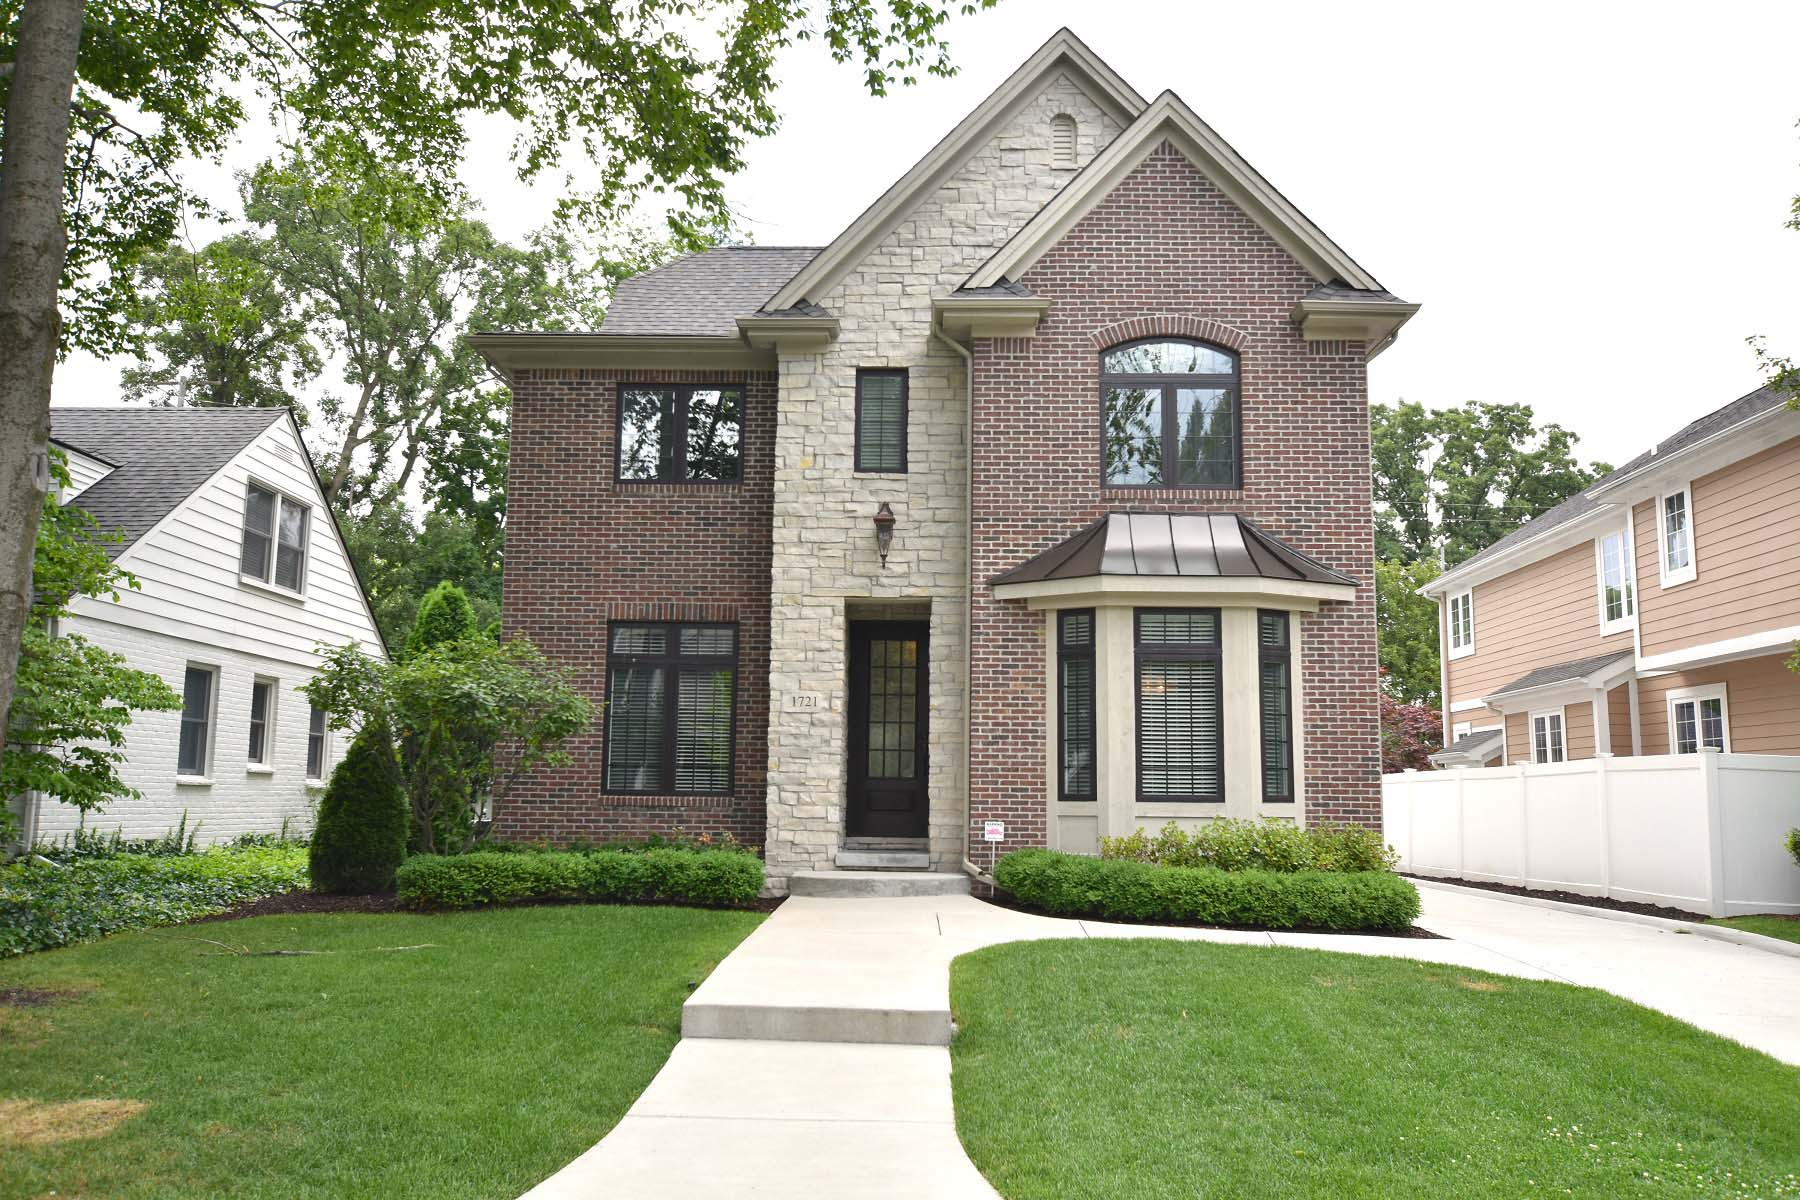 Single Family Homes for Active at Birmingham 1721 Stanley Blvd Birmingham, Michigan 48009 United States